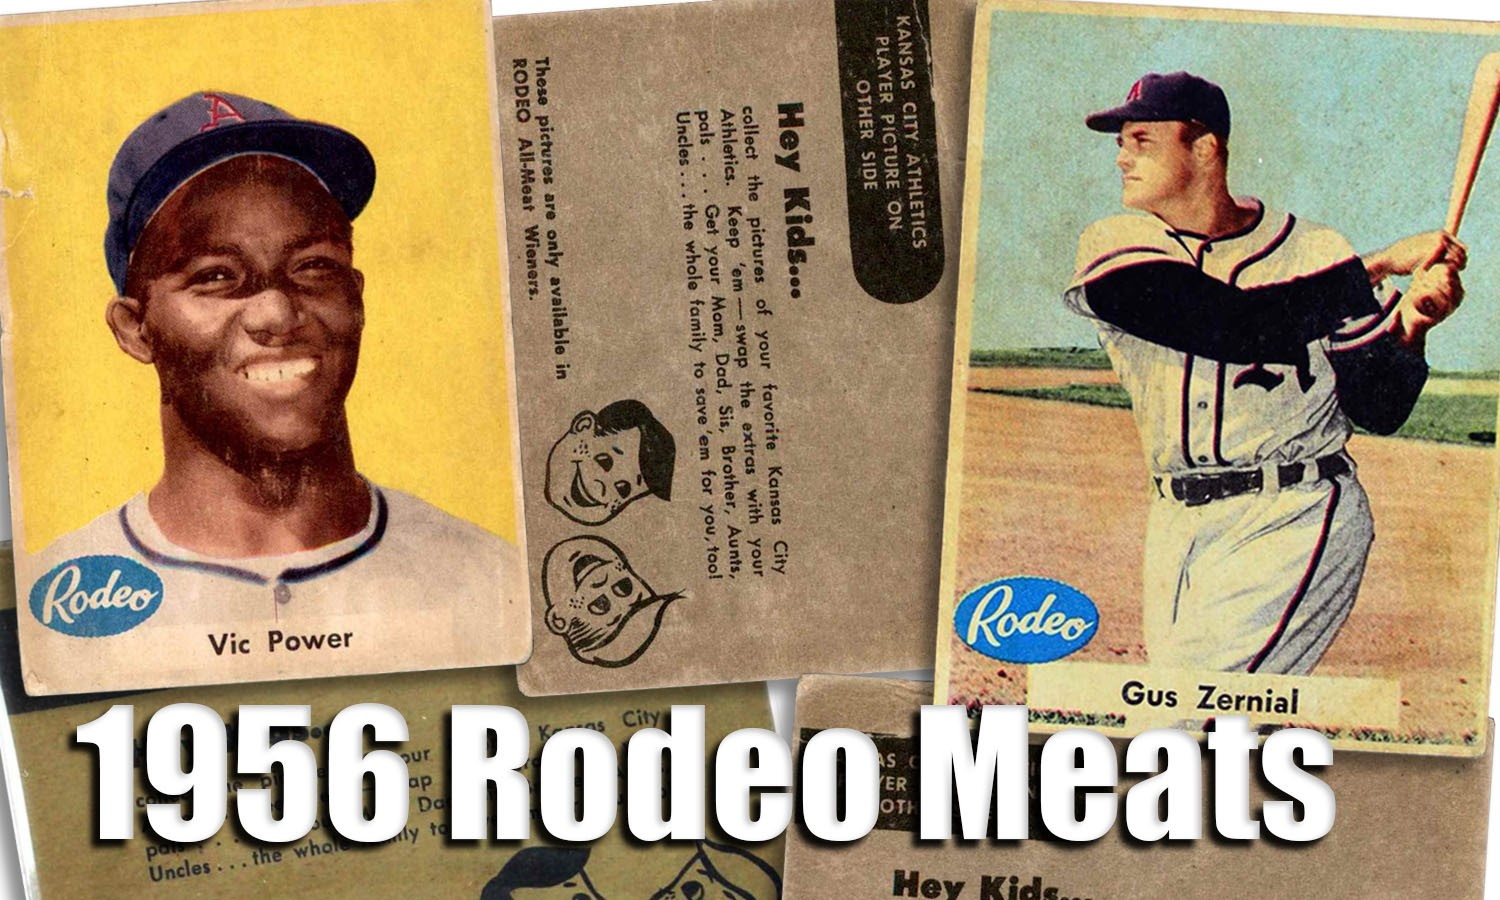 1956 Rodeo Meats Baseball Cards